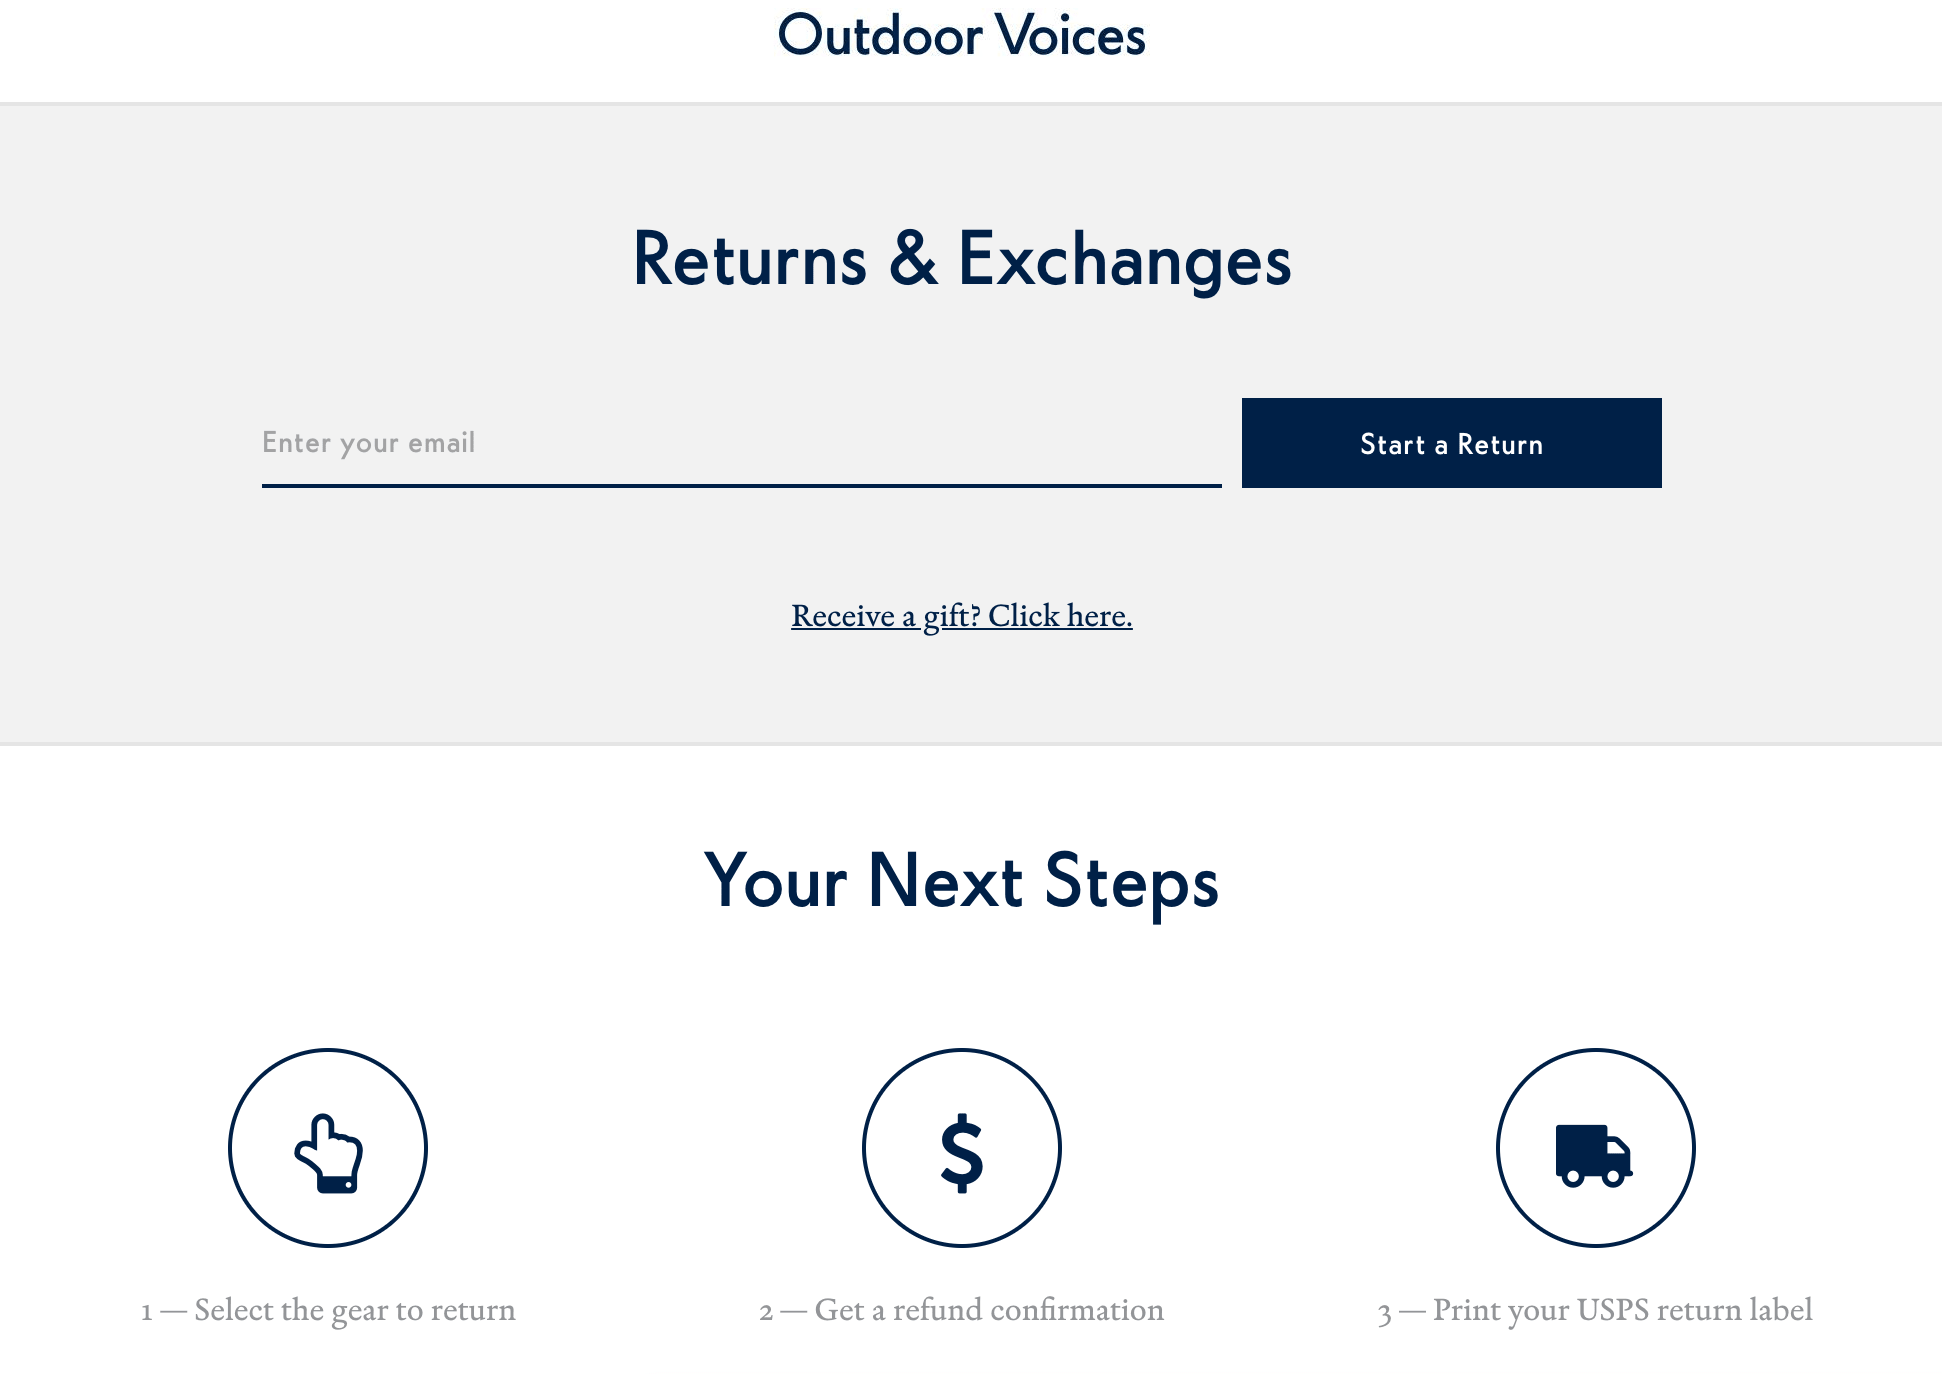 Returns & Exchanges: How to Write a Return Policy (Free